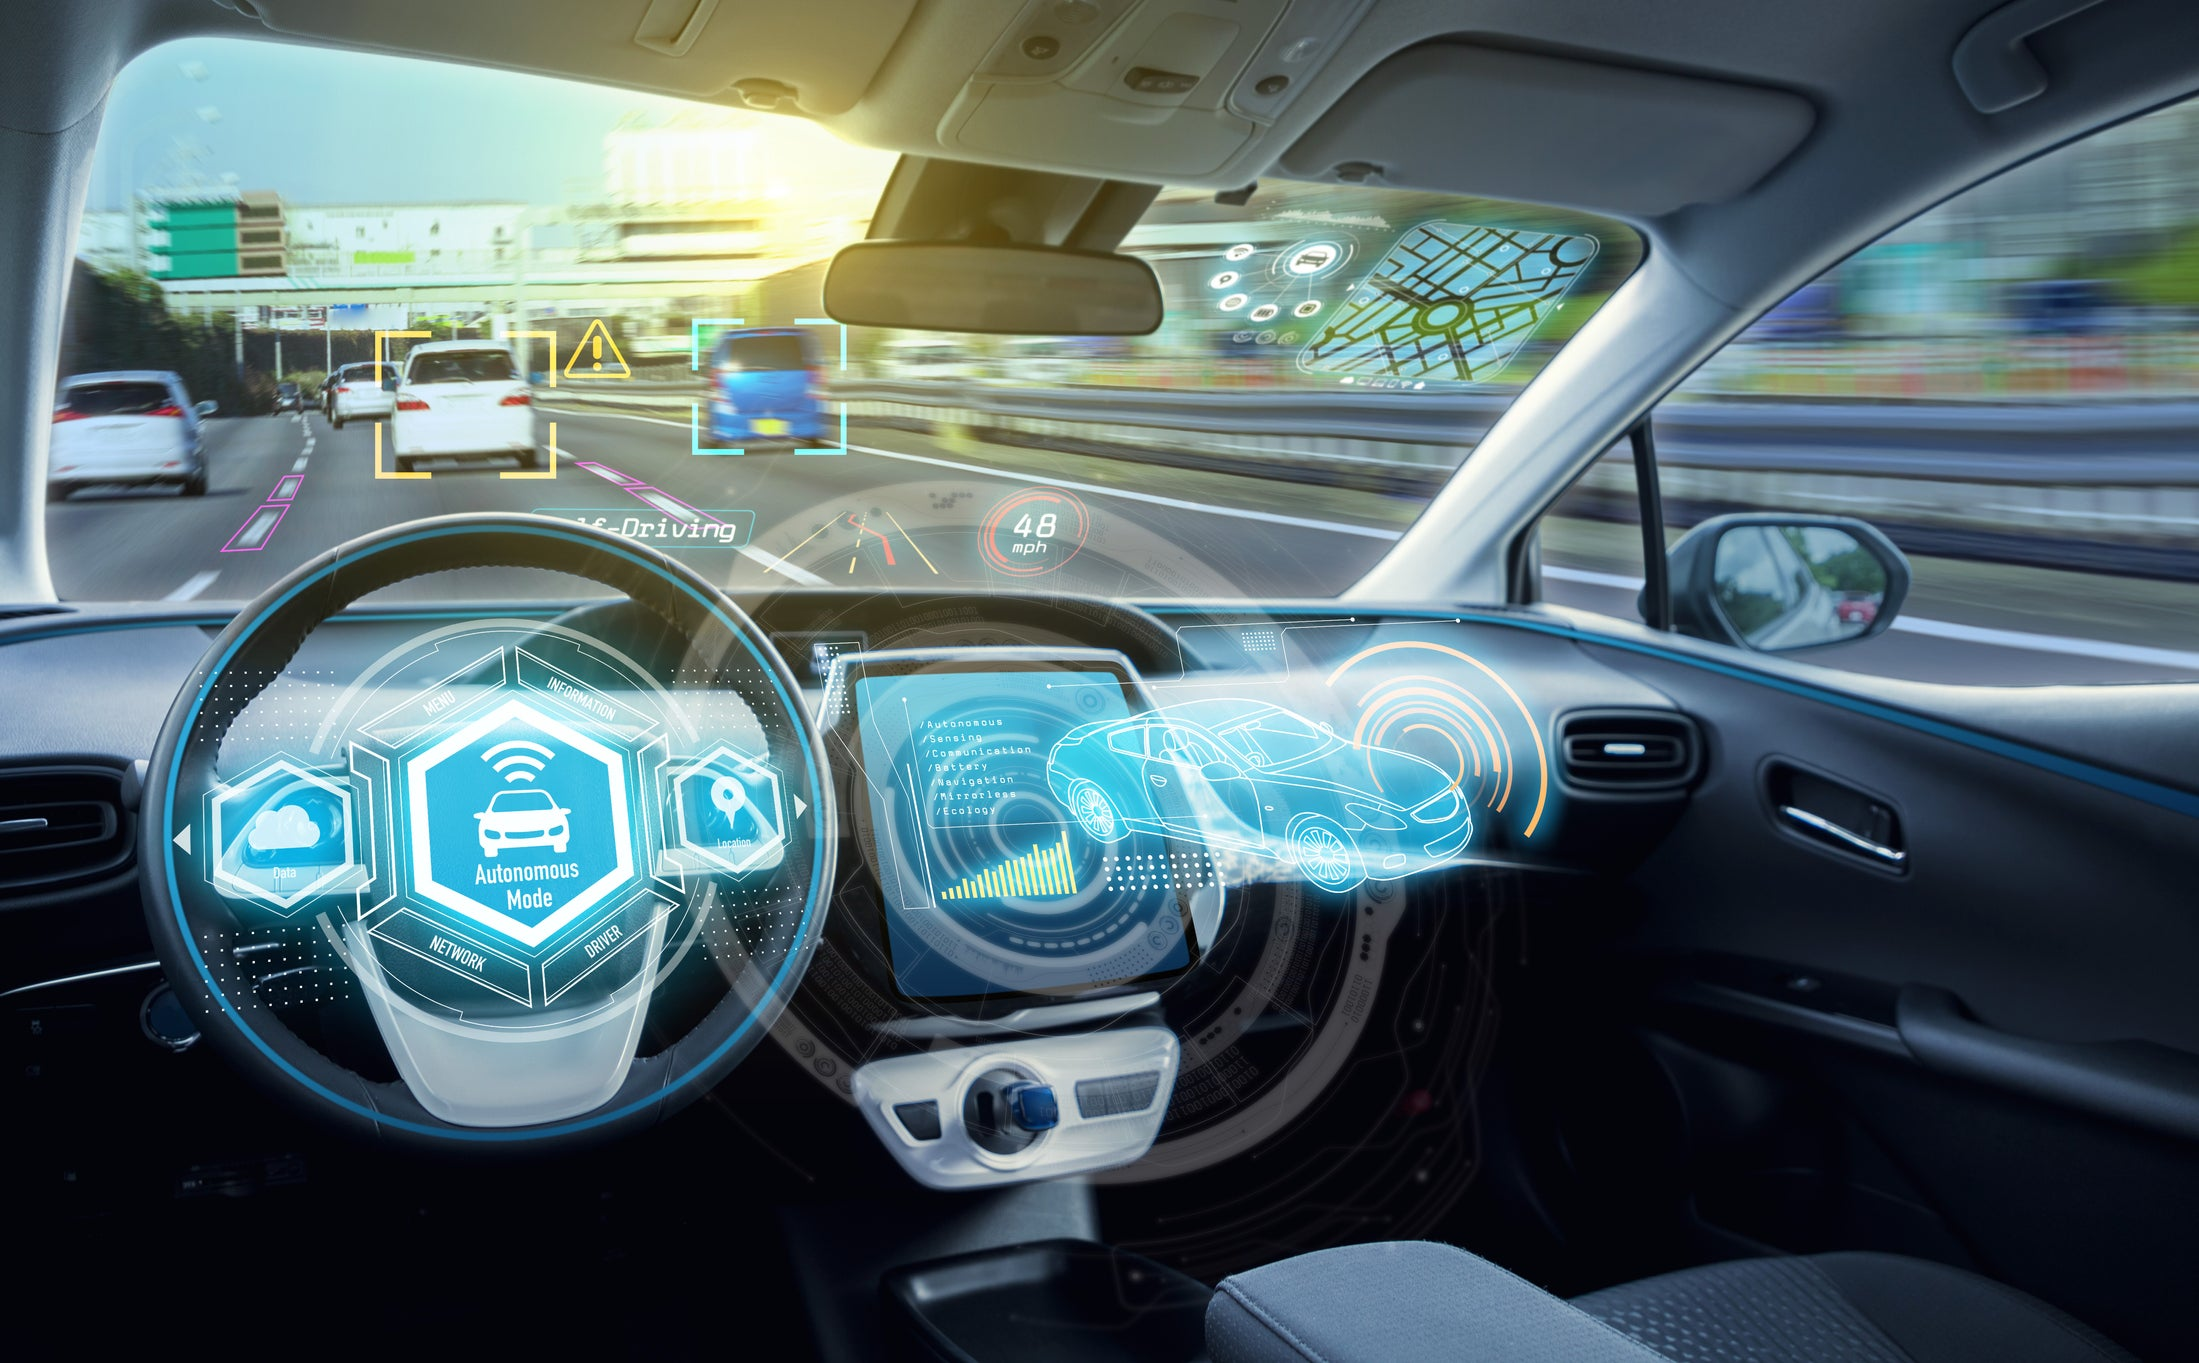 Nissan Will Provide Automated Driving Technology in All Future Models